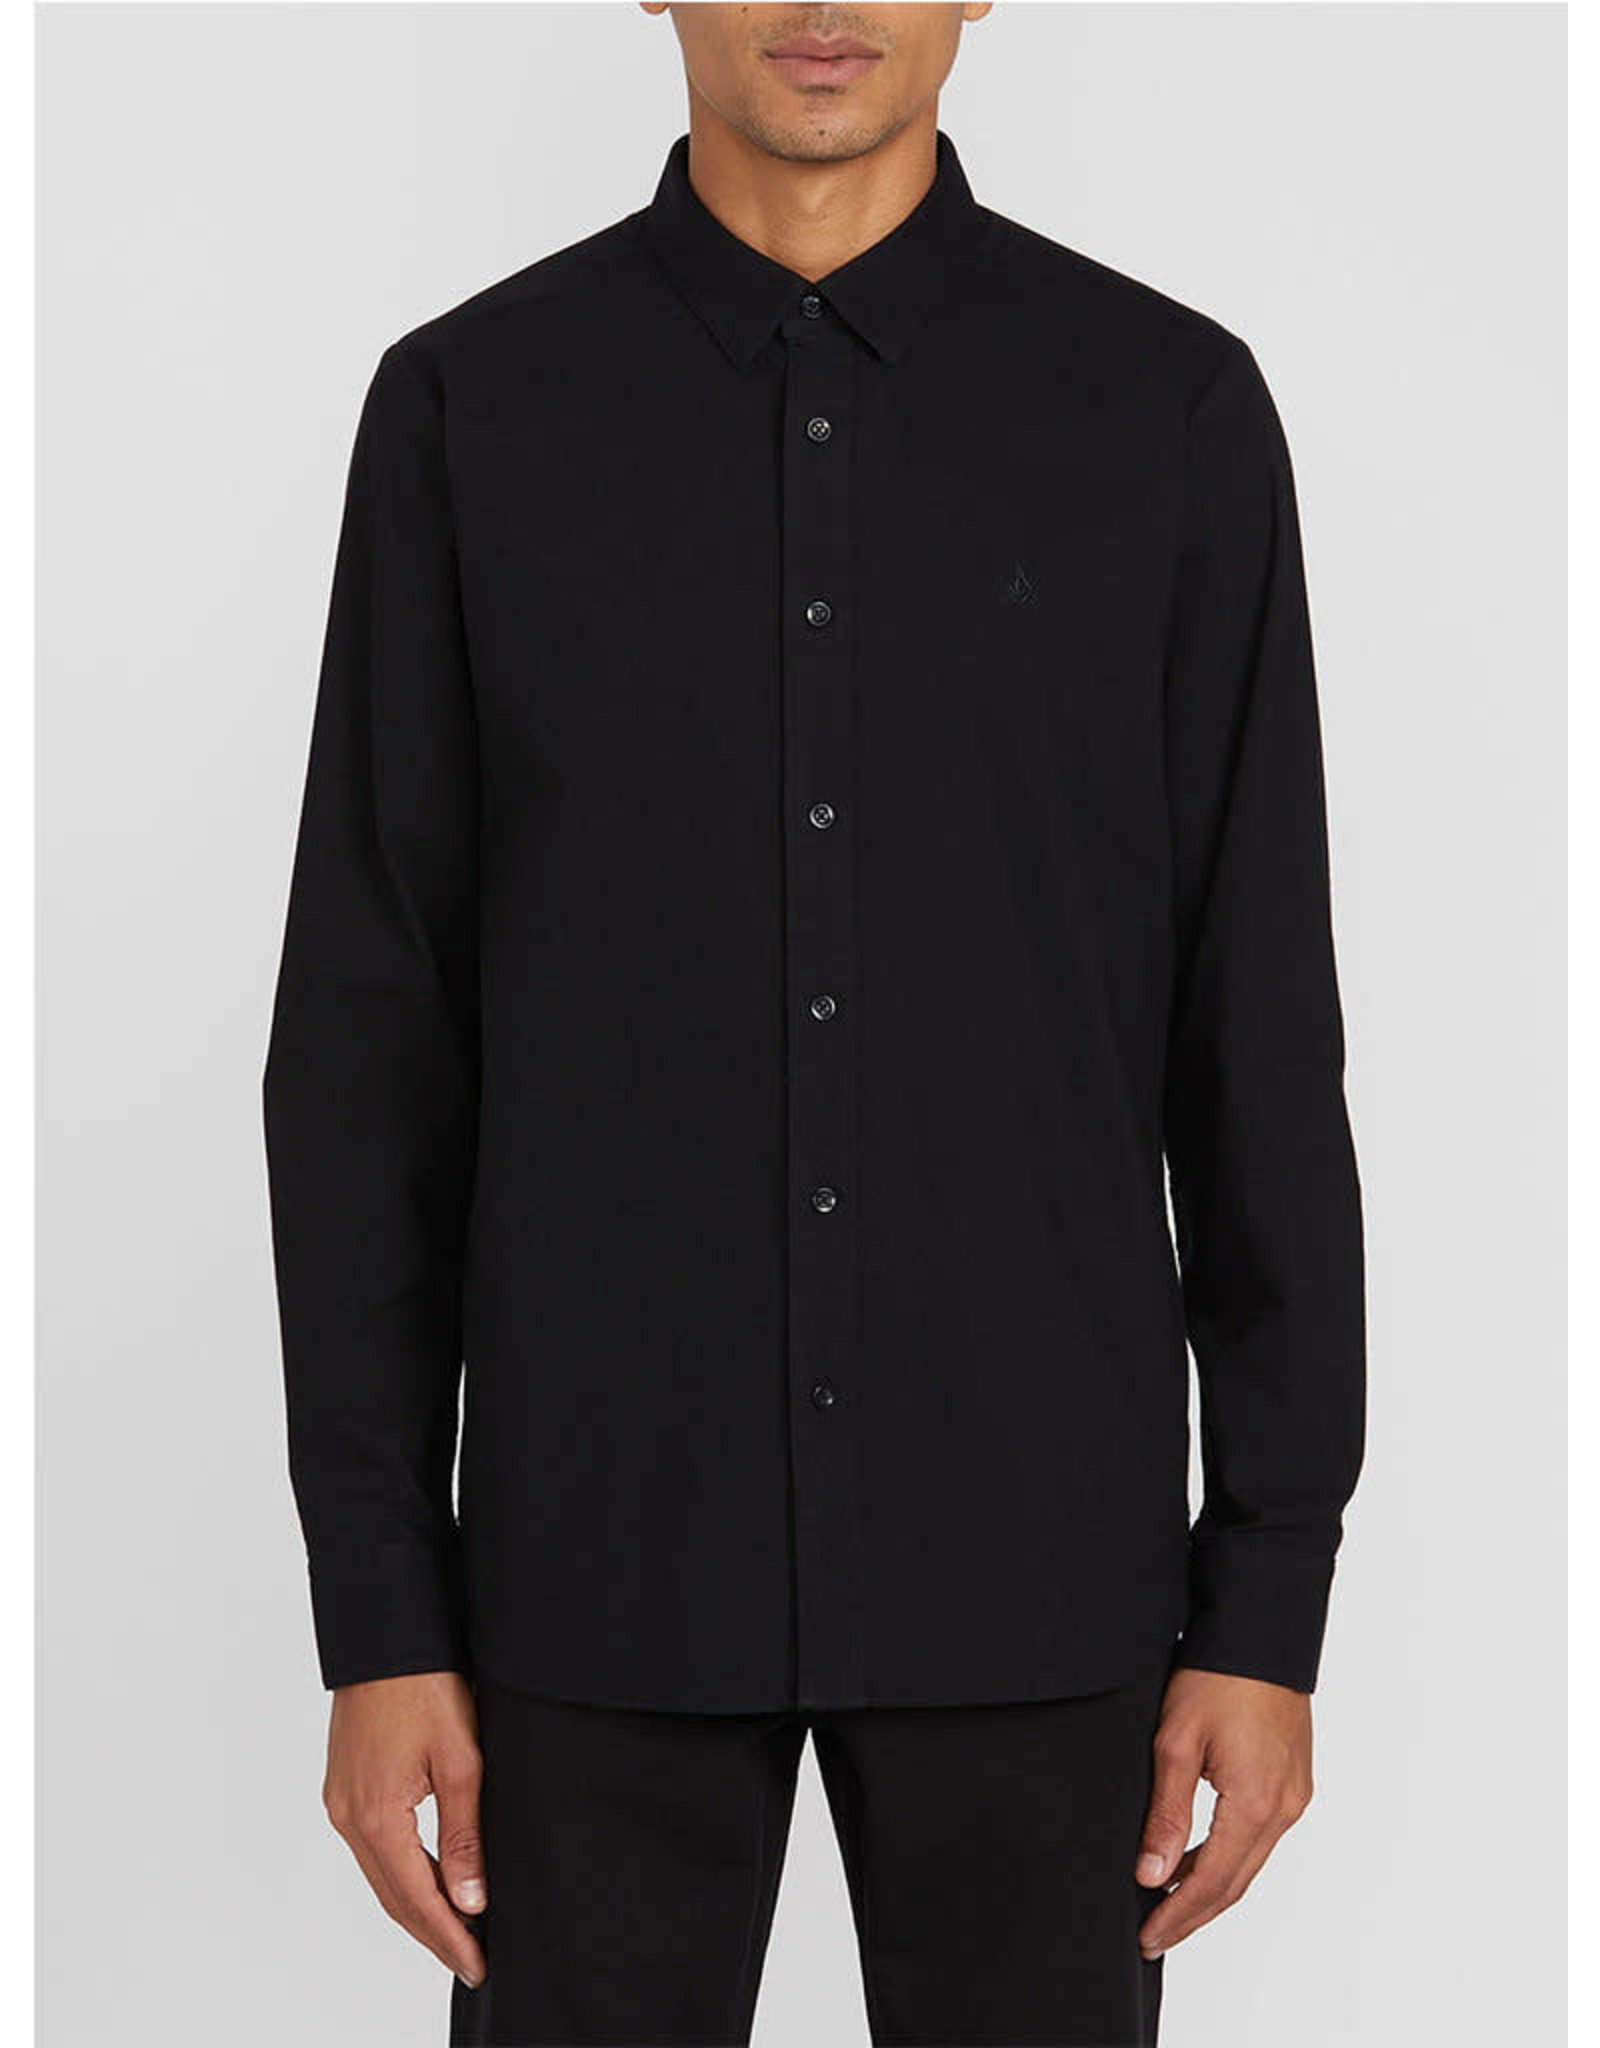 volcom Volcom - Chemise Oxford Stretch L/S Black